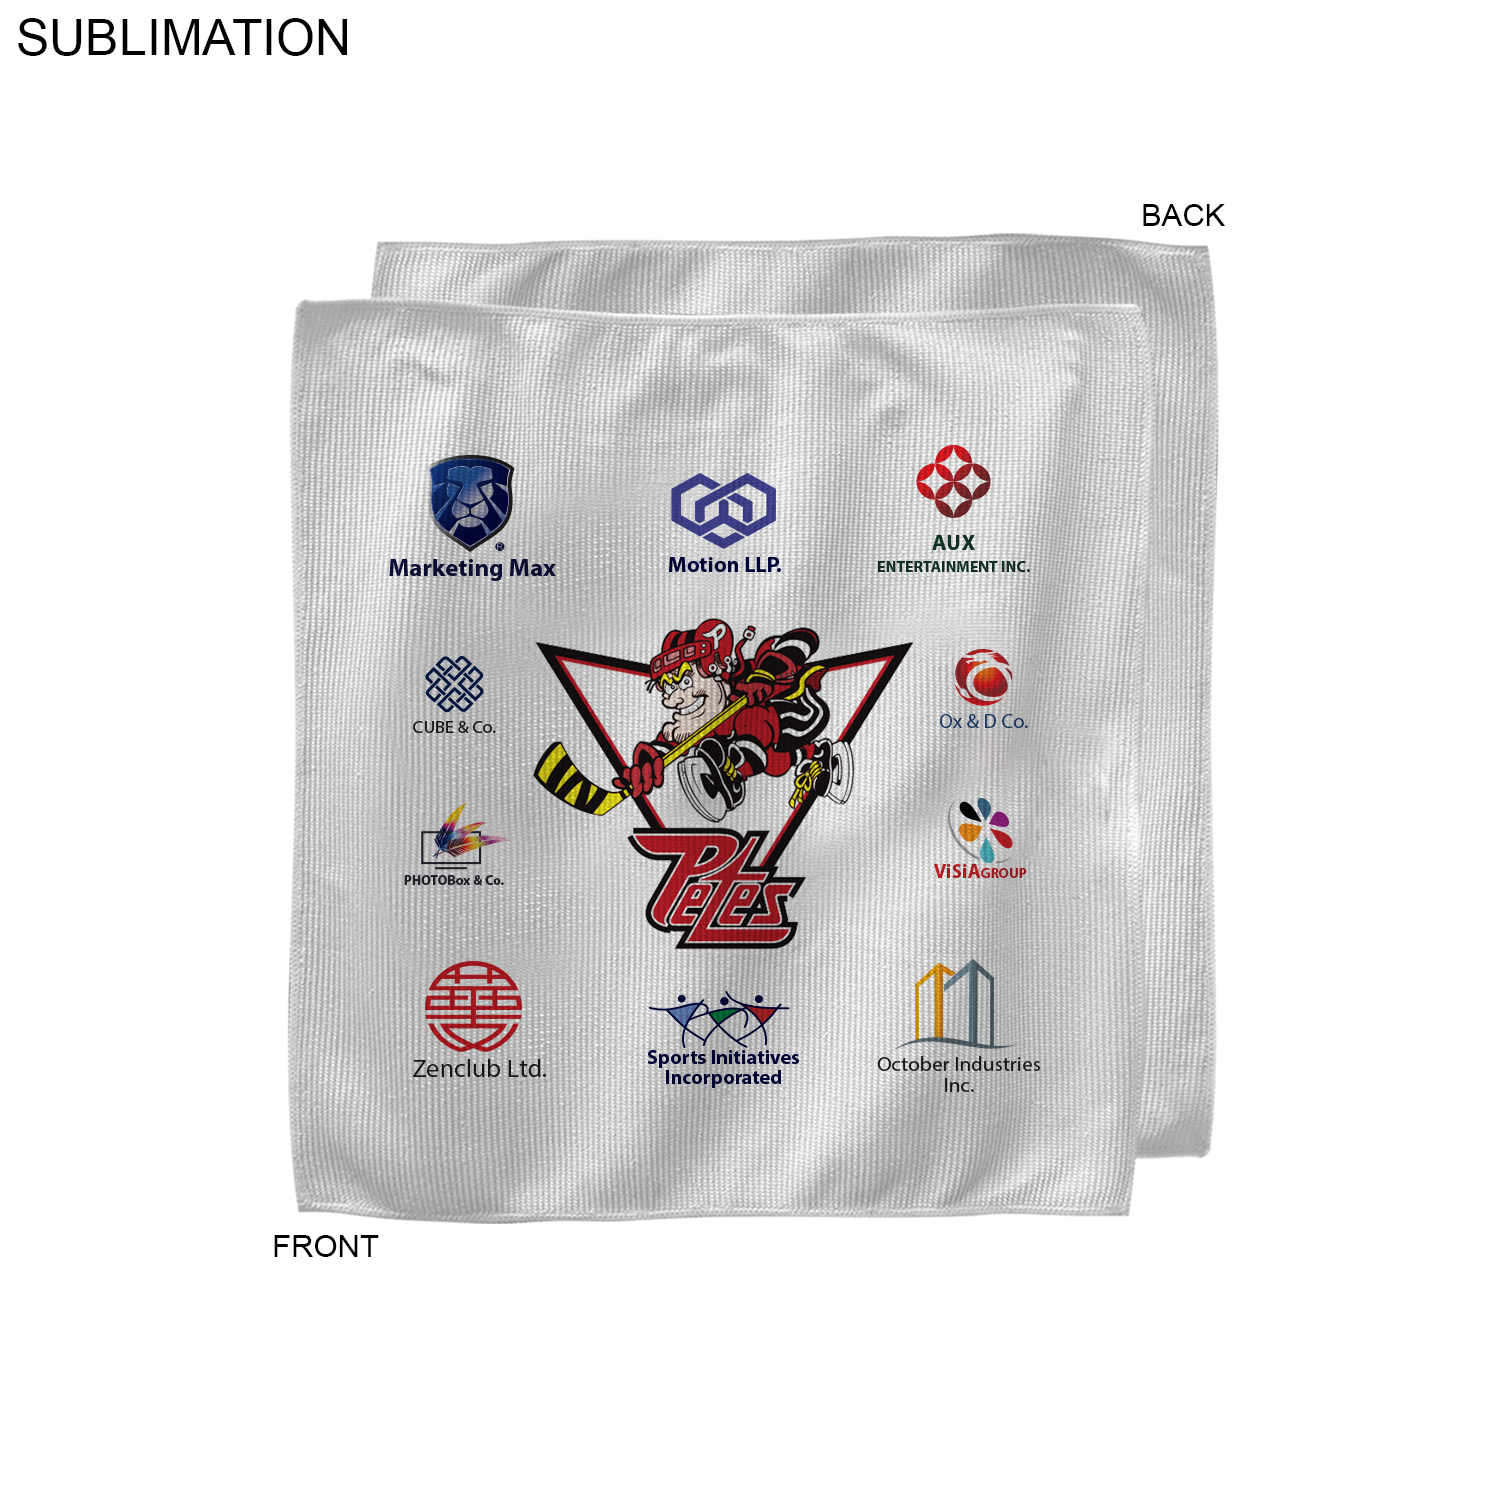 Sponsorship Rally Towel, 12x12, #SU206-8, Full Colour Imprint